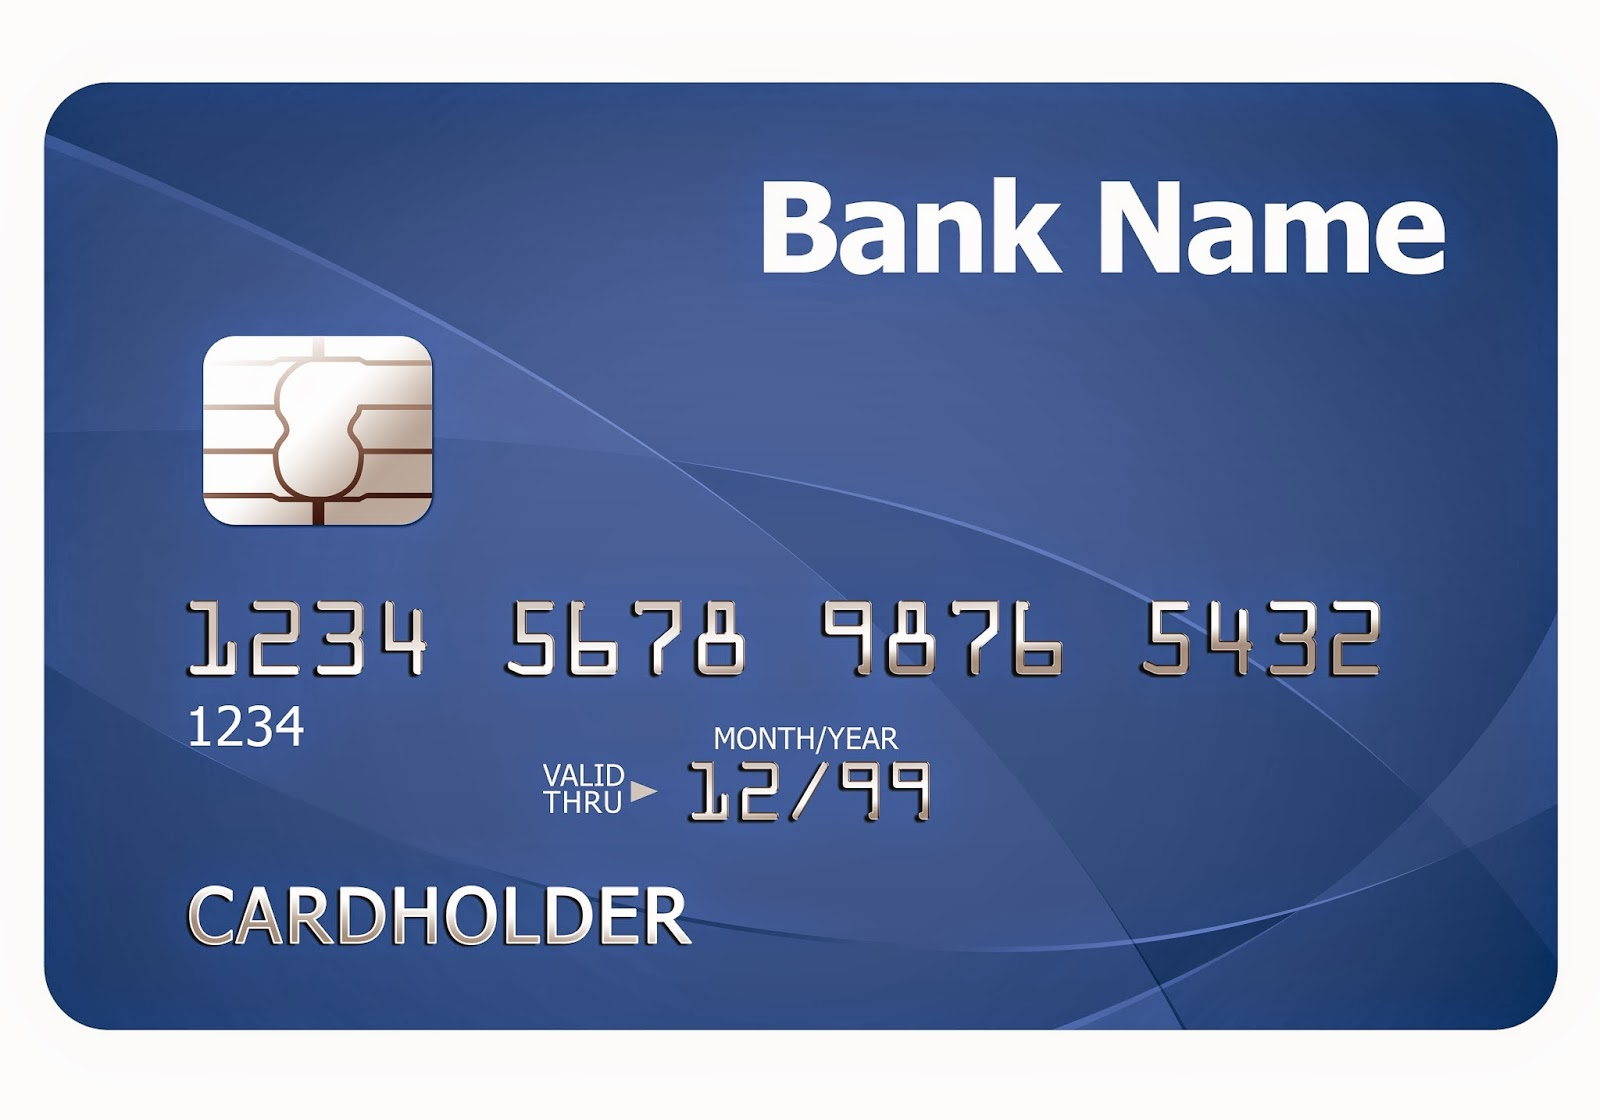 chase bank debit card numbers in the back that work